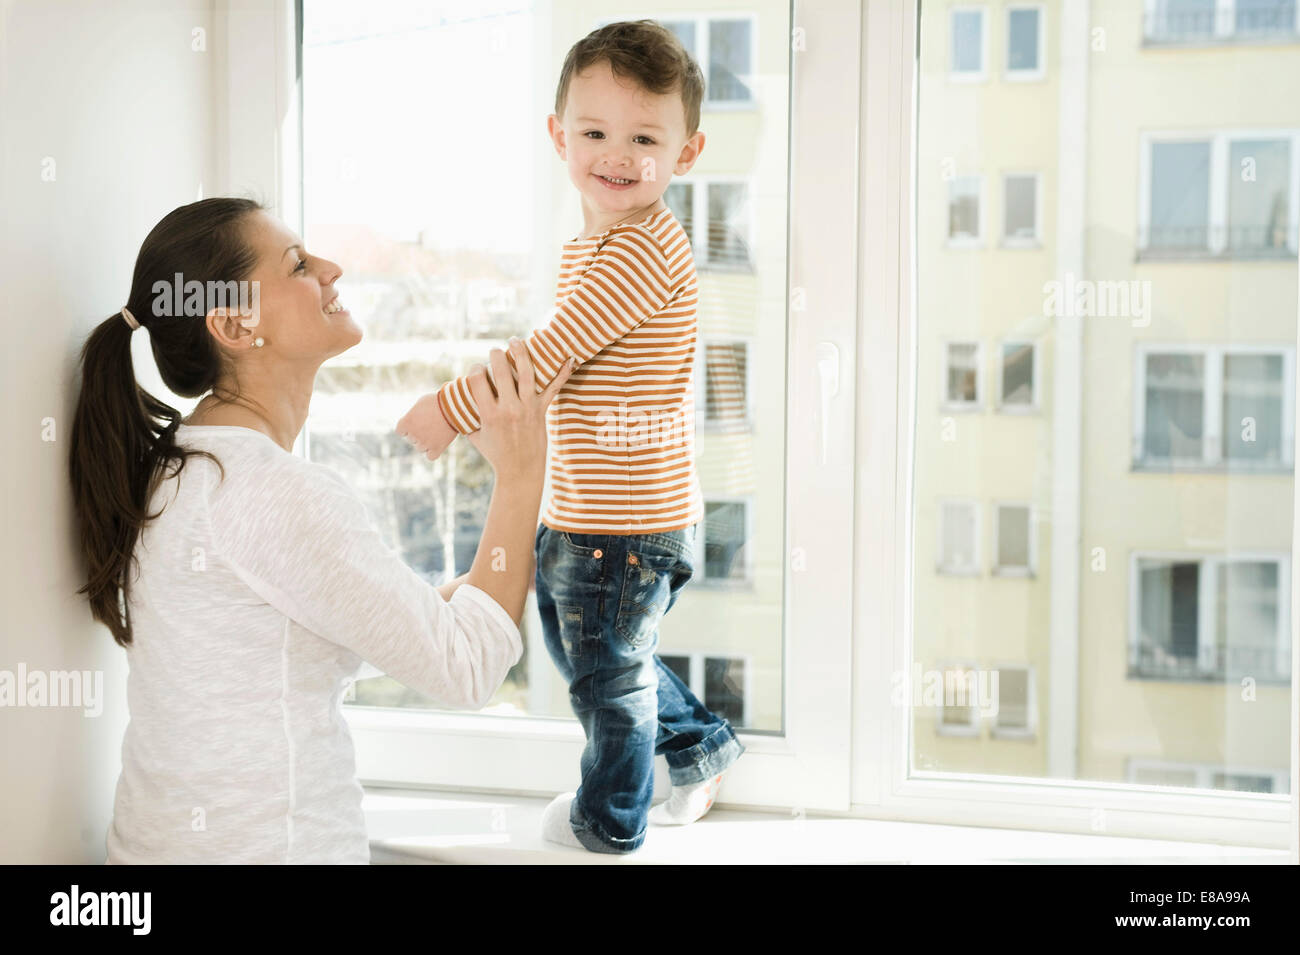 Mother and son smiling - Stock Image